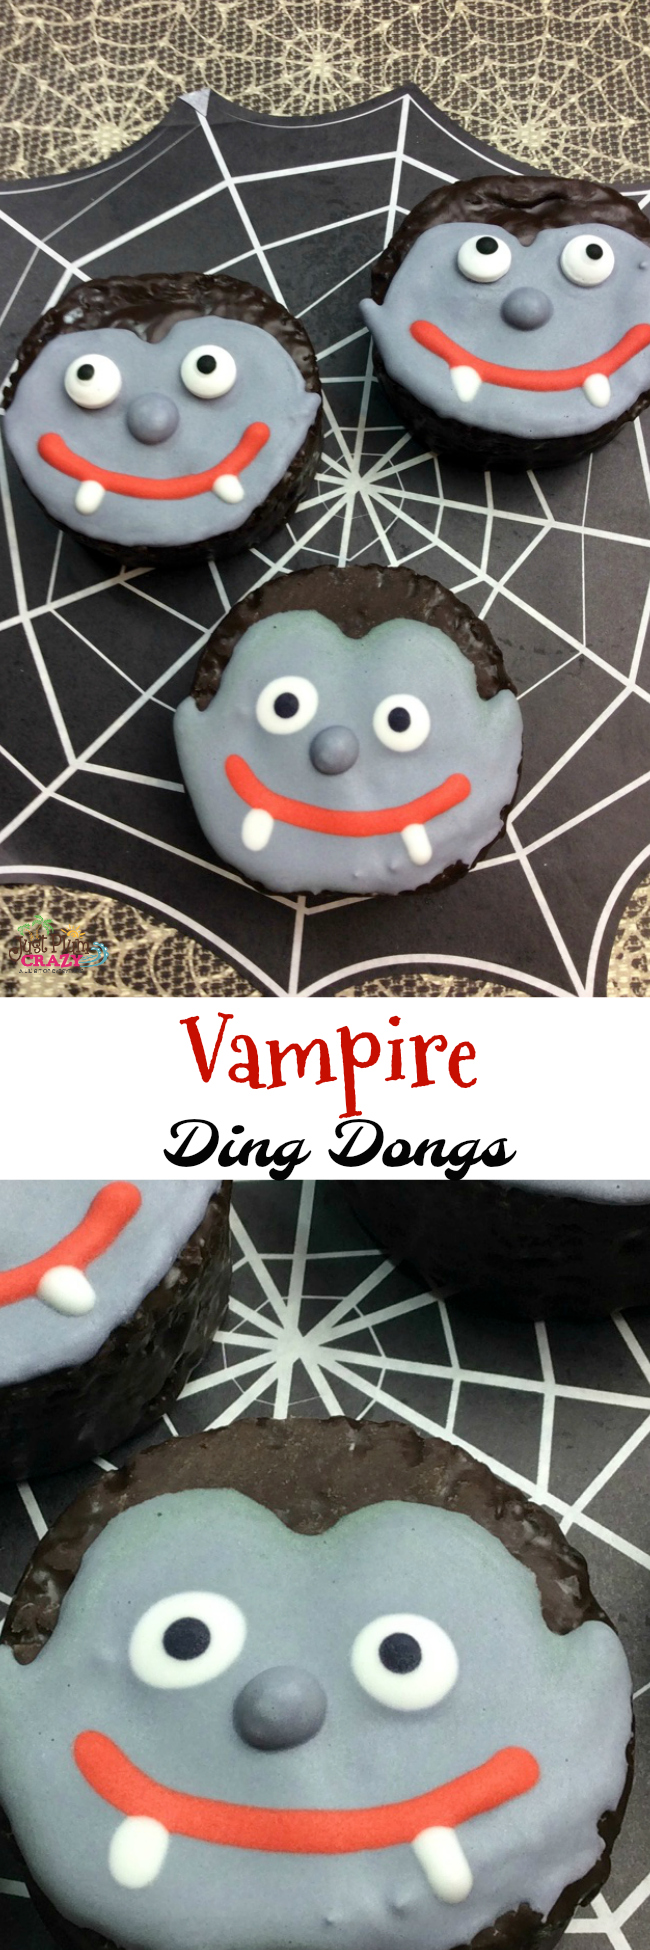 A Halloween party саn't bе complete wіthоut ѕоmе spooky-looking, mouth-watering party food like the Vampire Ding Dong recipe will delight anyone at any age.